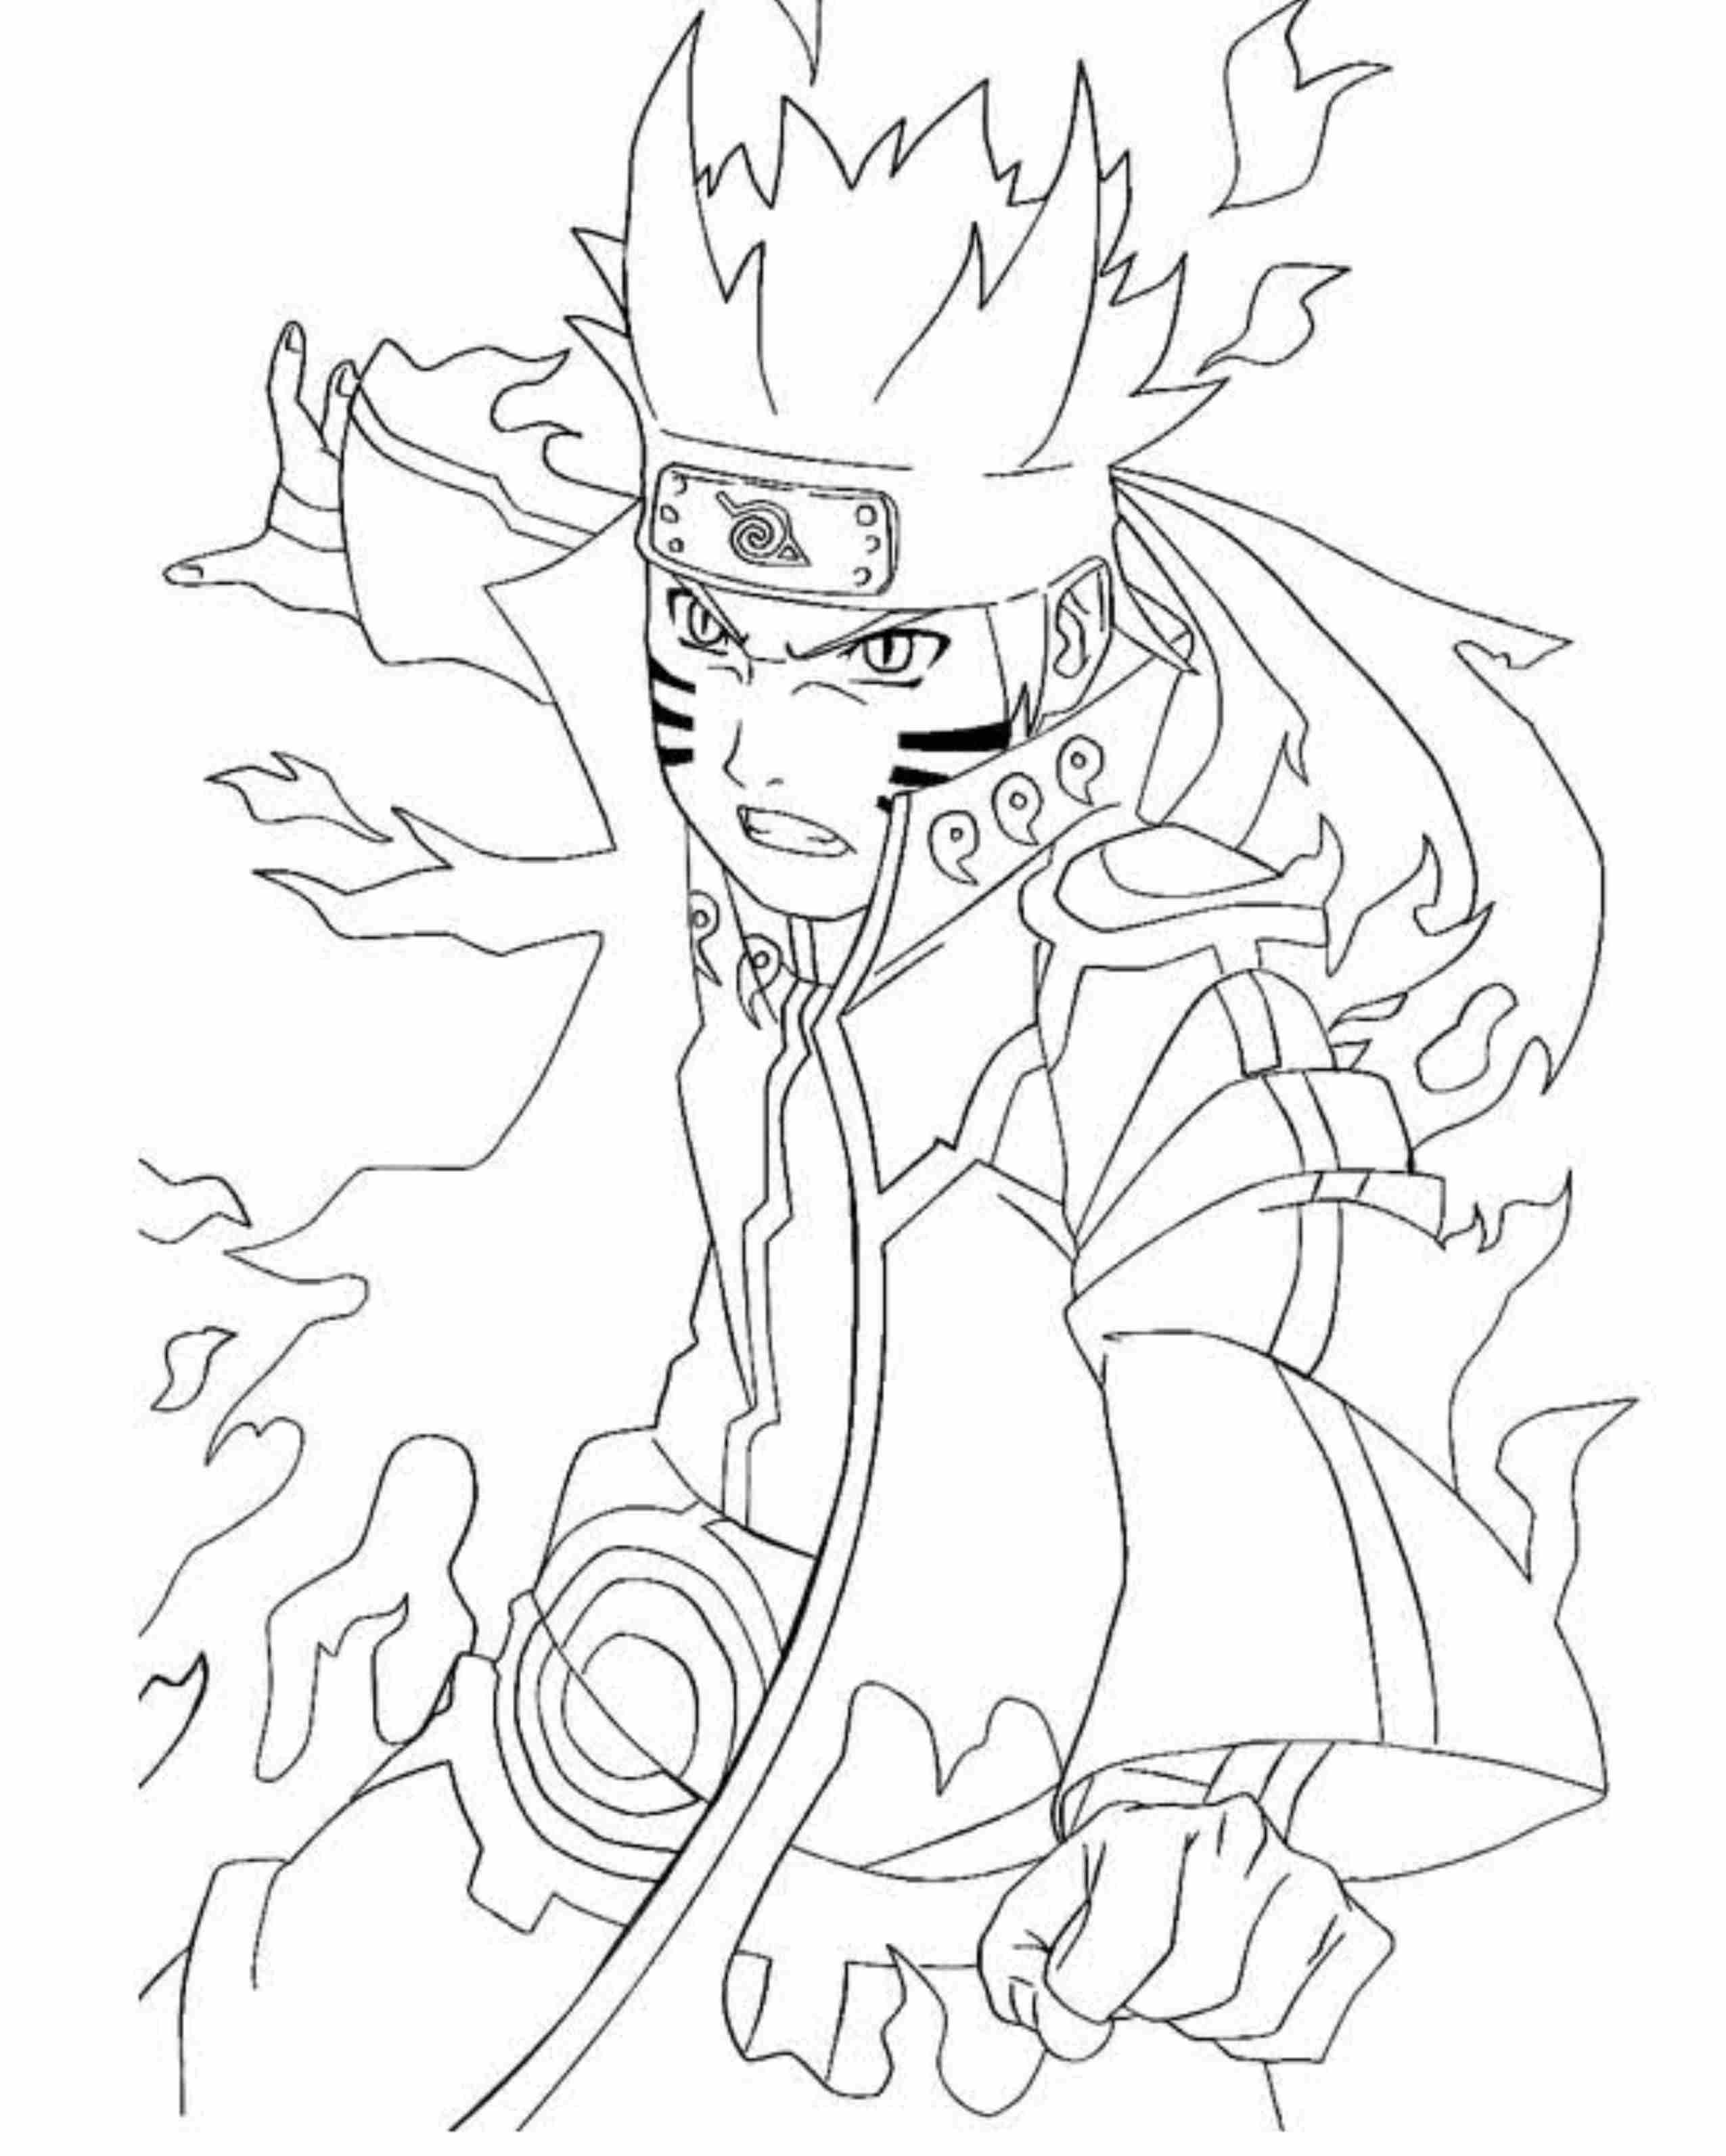 Naruto Coloring Pages Pdf - Coloring Home à Naruto Shippuden Coloring Pages